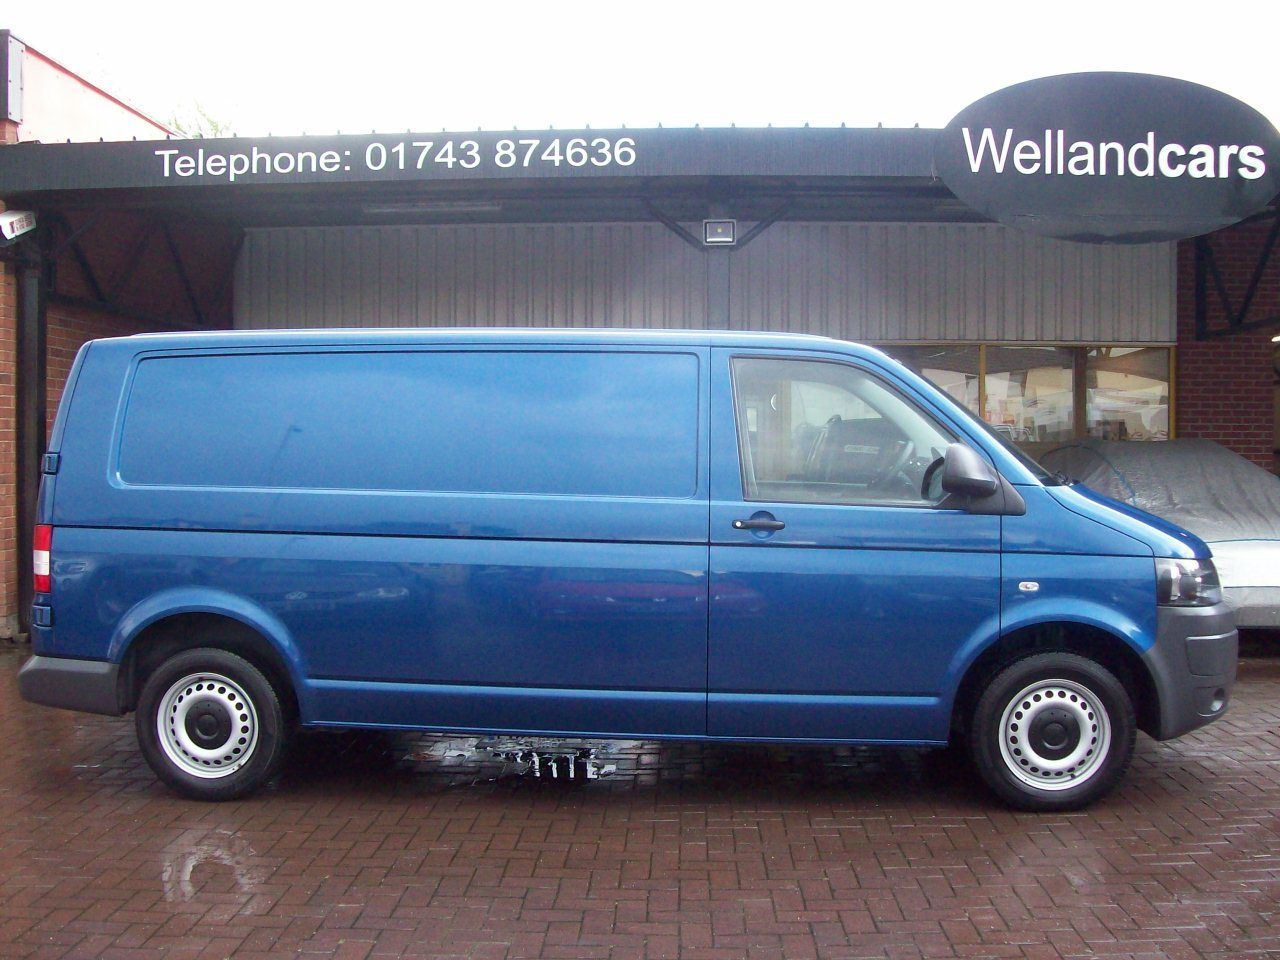 Volkswagen Transporter 2.0 TDI 140PS T30 LWB Van 6 Speed Manual, Air-Con, Ply Lined, Full Bulkhead, 1 Owner, F/S/H Van Diesel Blue at Welland Cars Shrewsbury